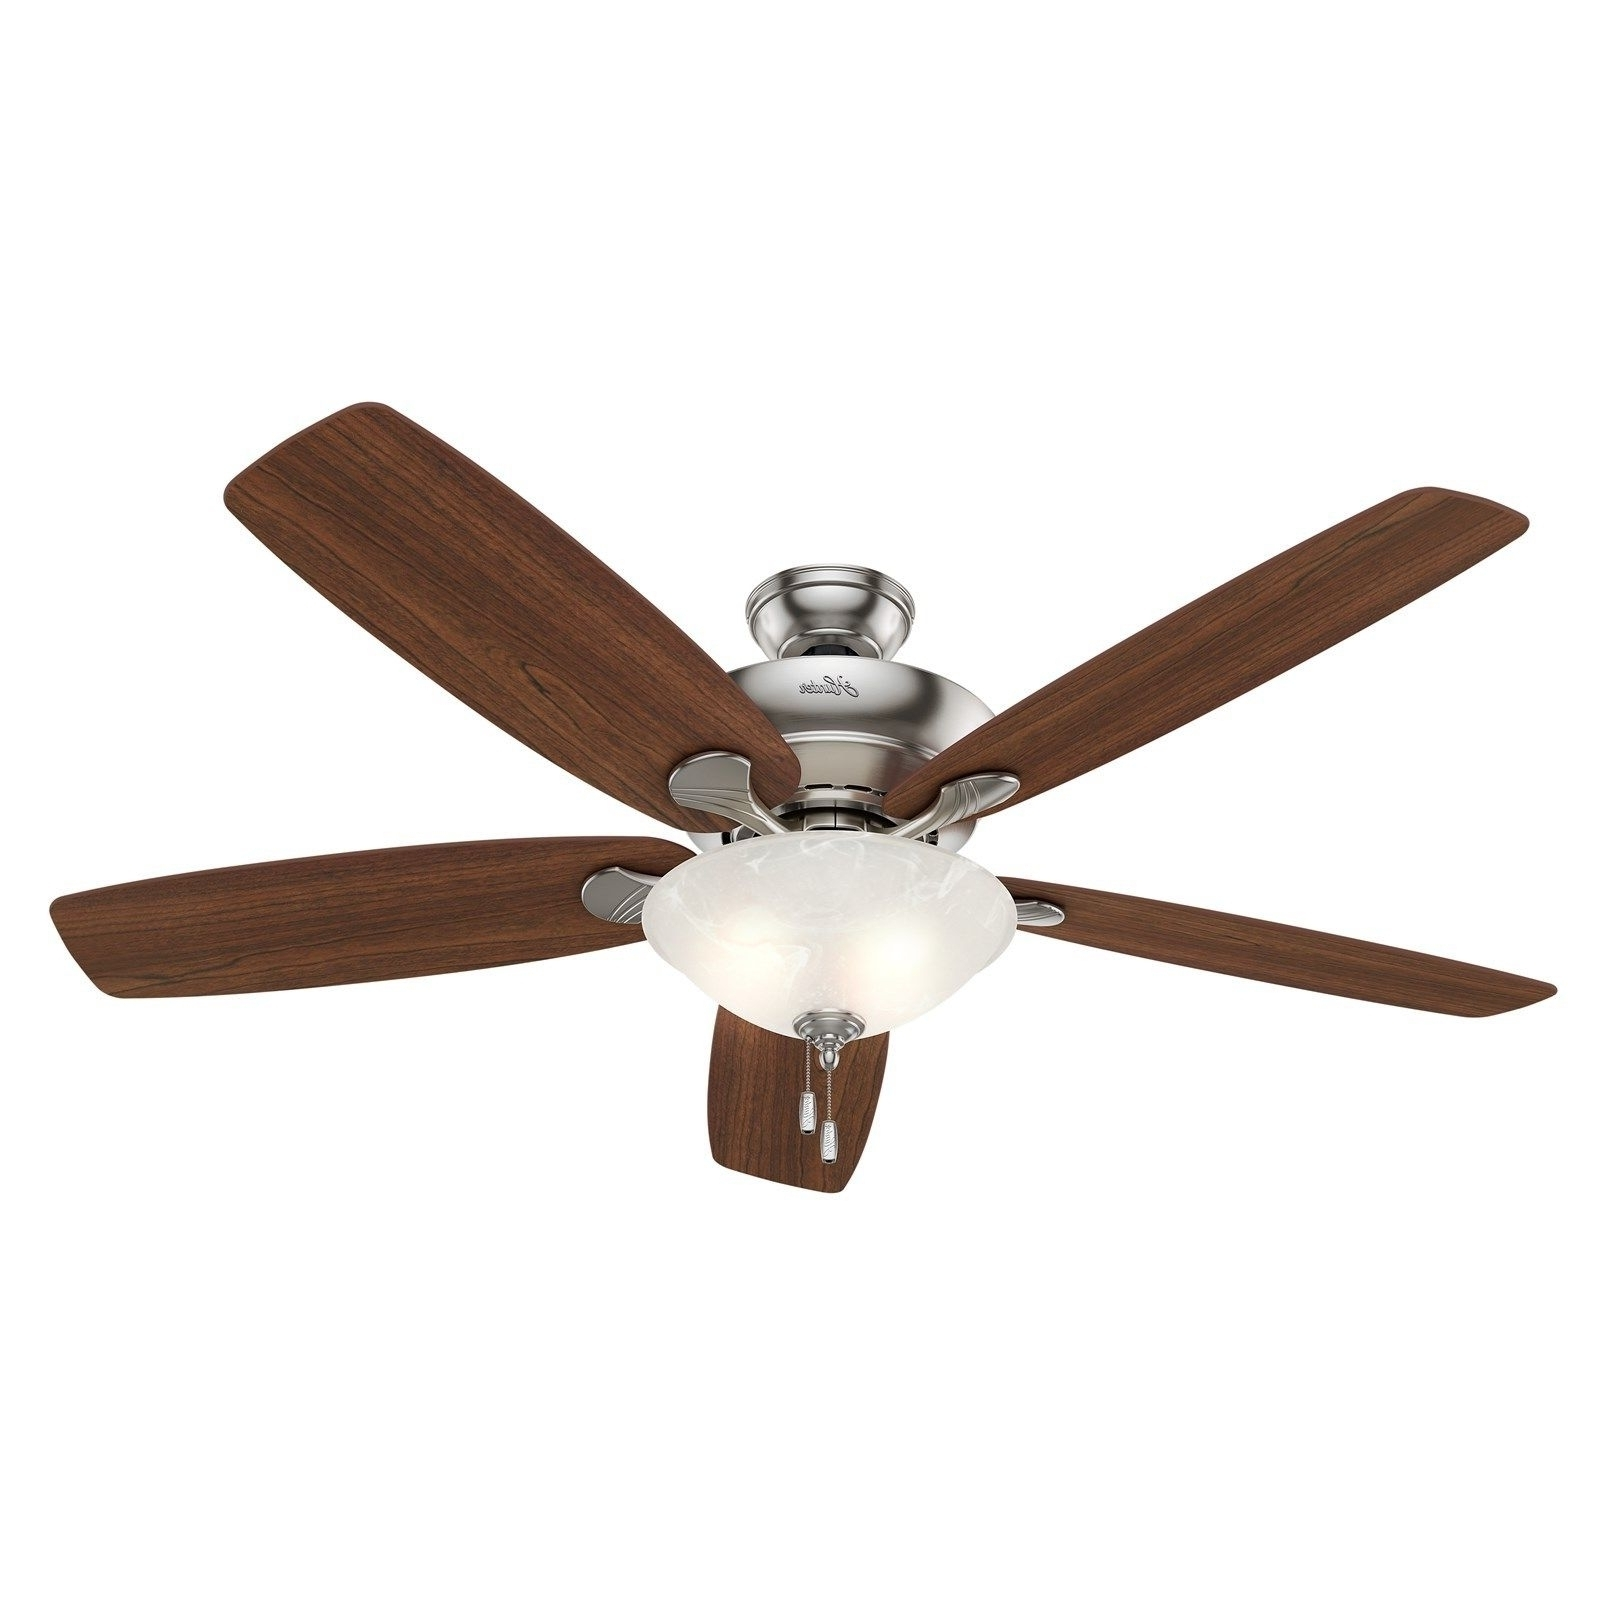 79 Amazing Industrial Ceiling Fans With Lightss Pertaining To Outdoor Ceiling Fans With Lights At Ebay (#2 of 15)